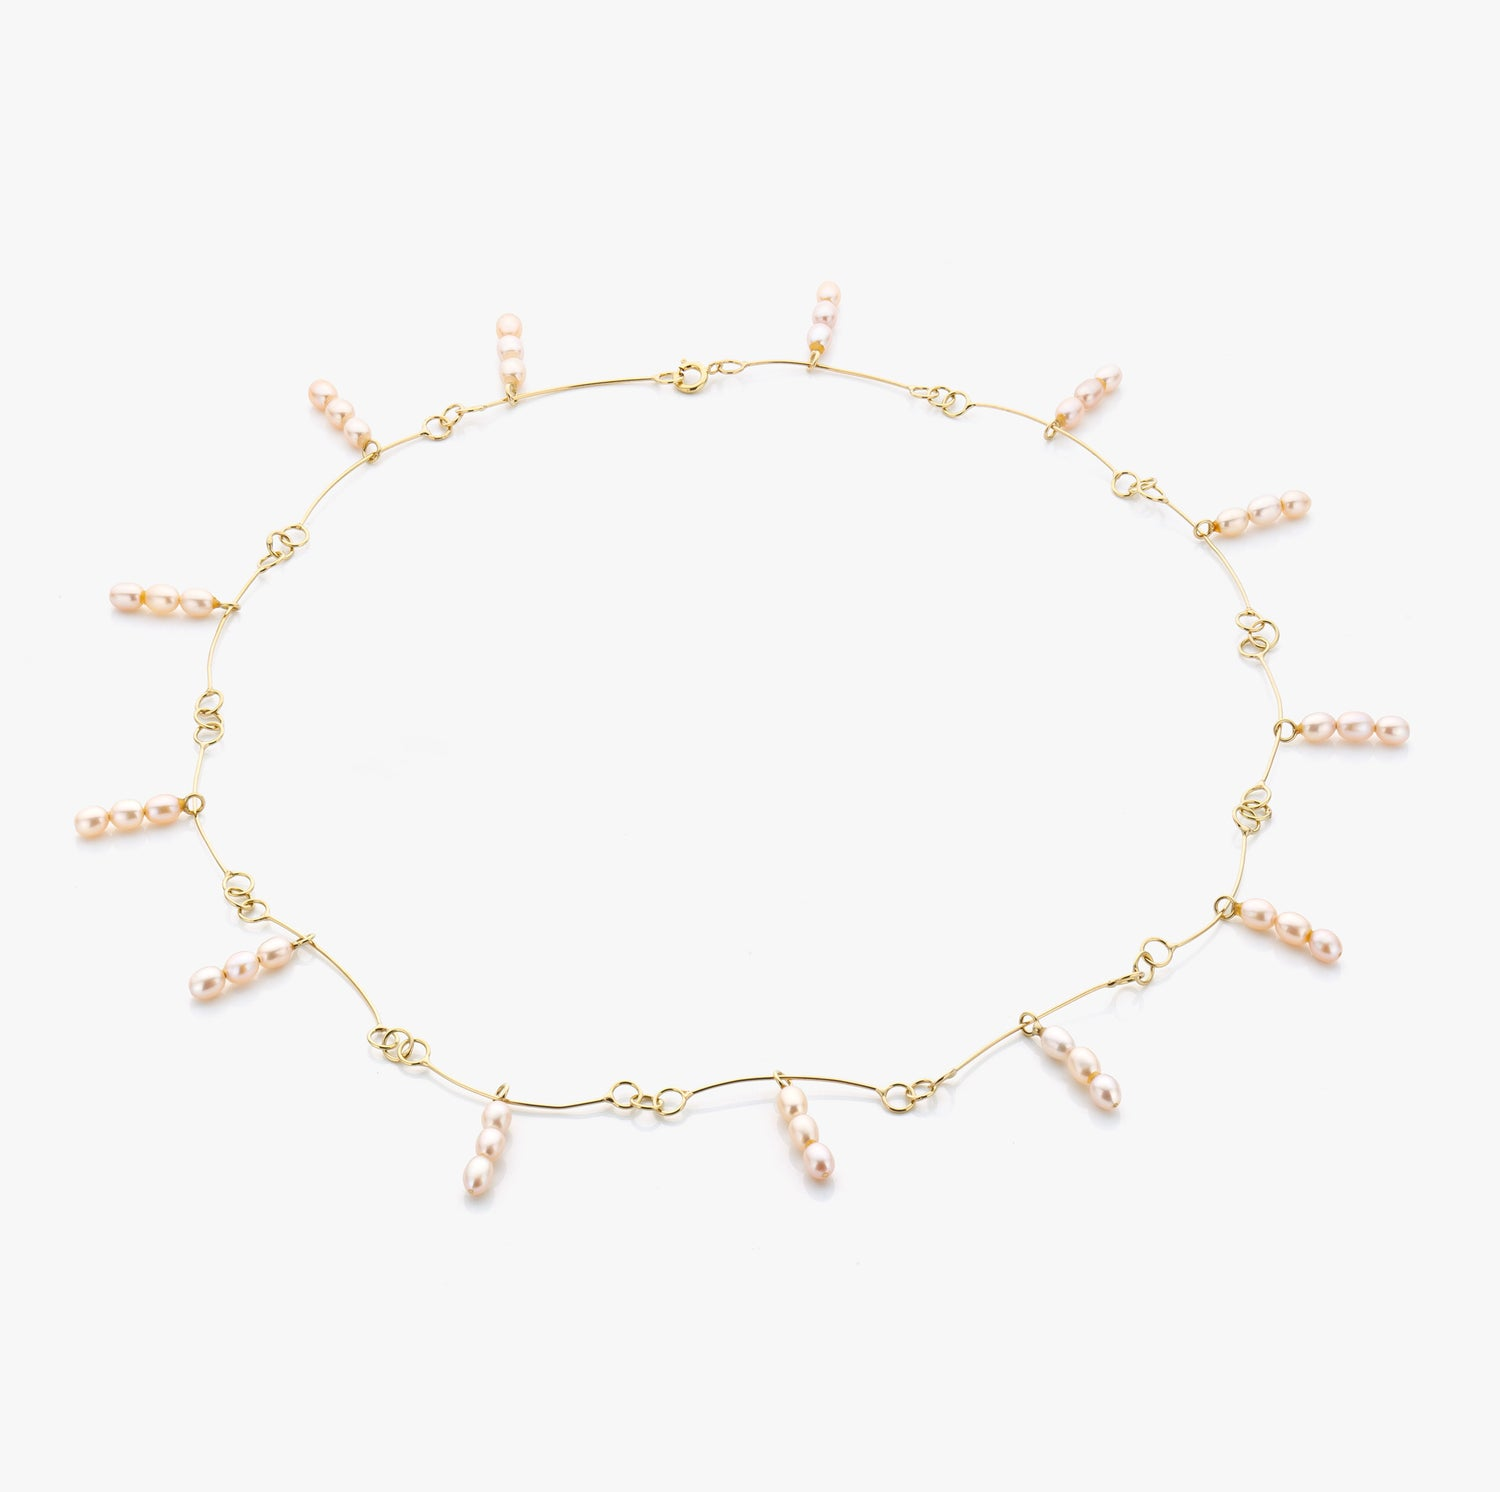 Image of necklace in gold and pink pearls - ketting in goud en parels